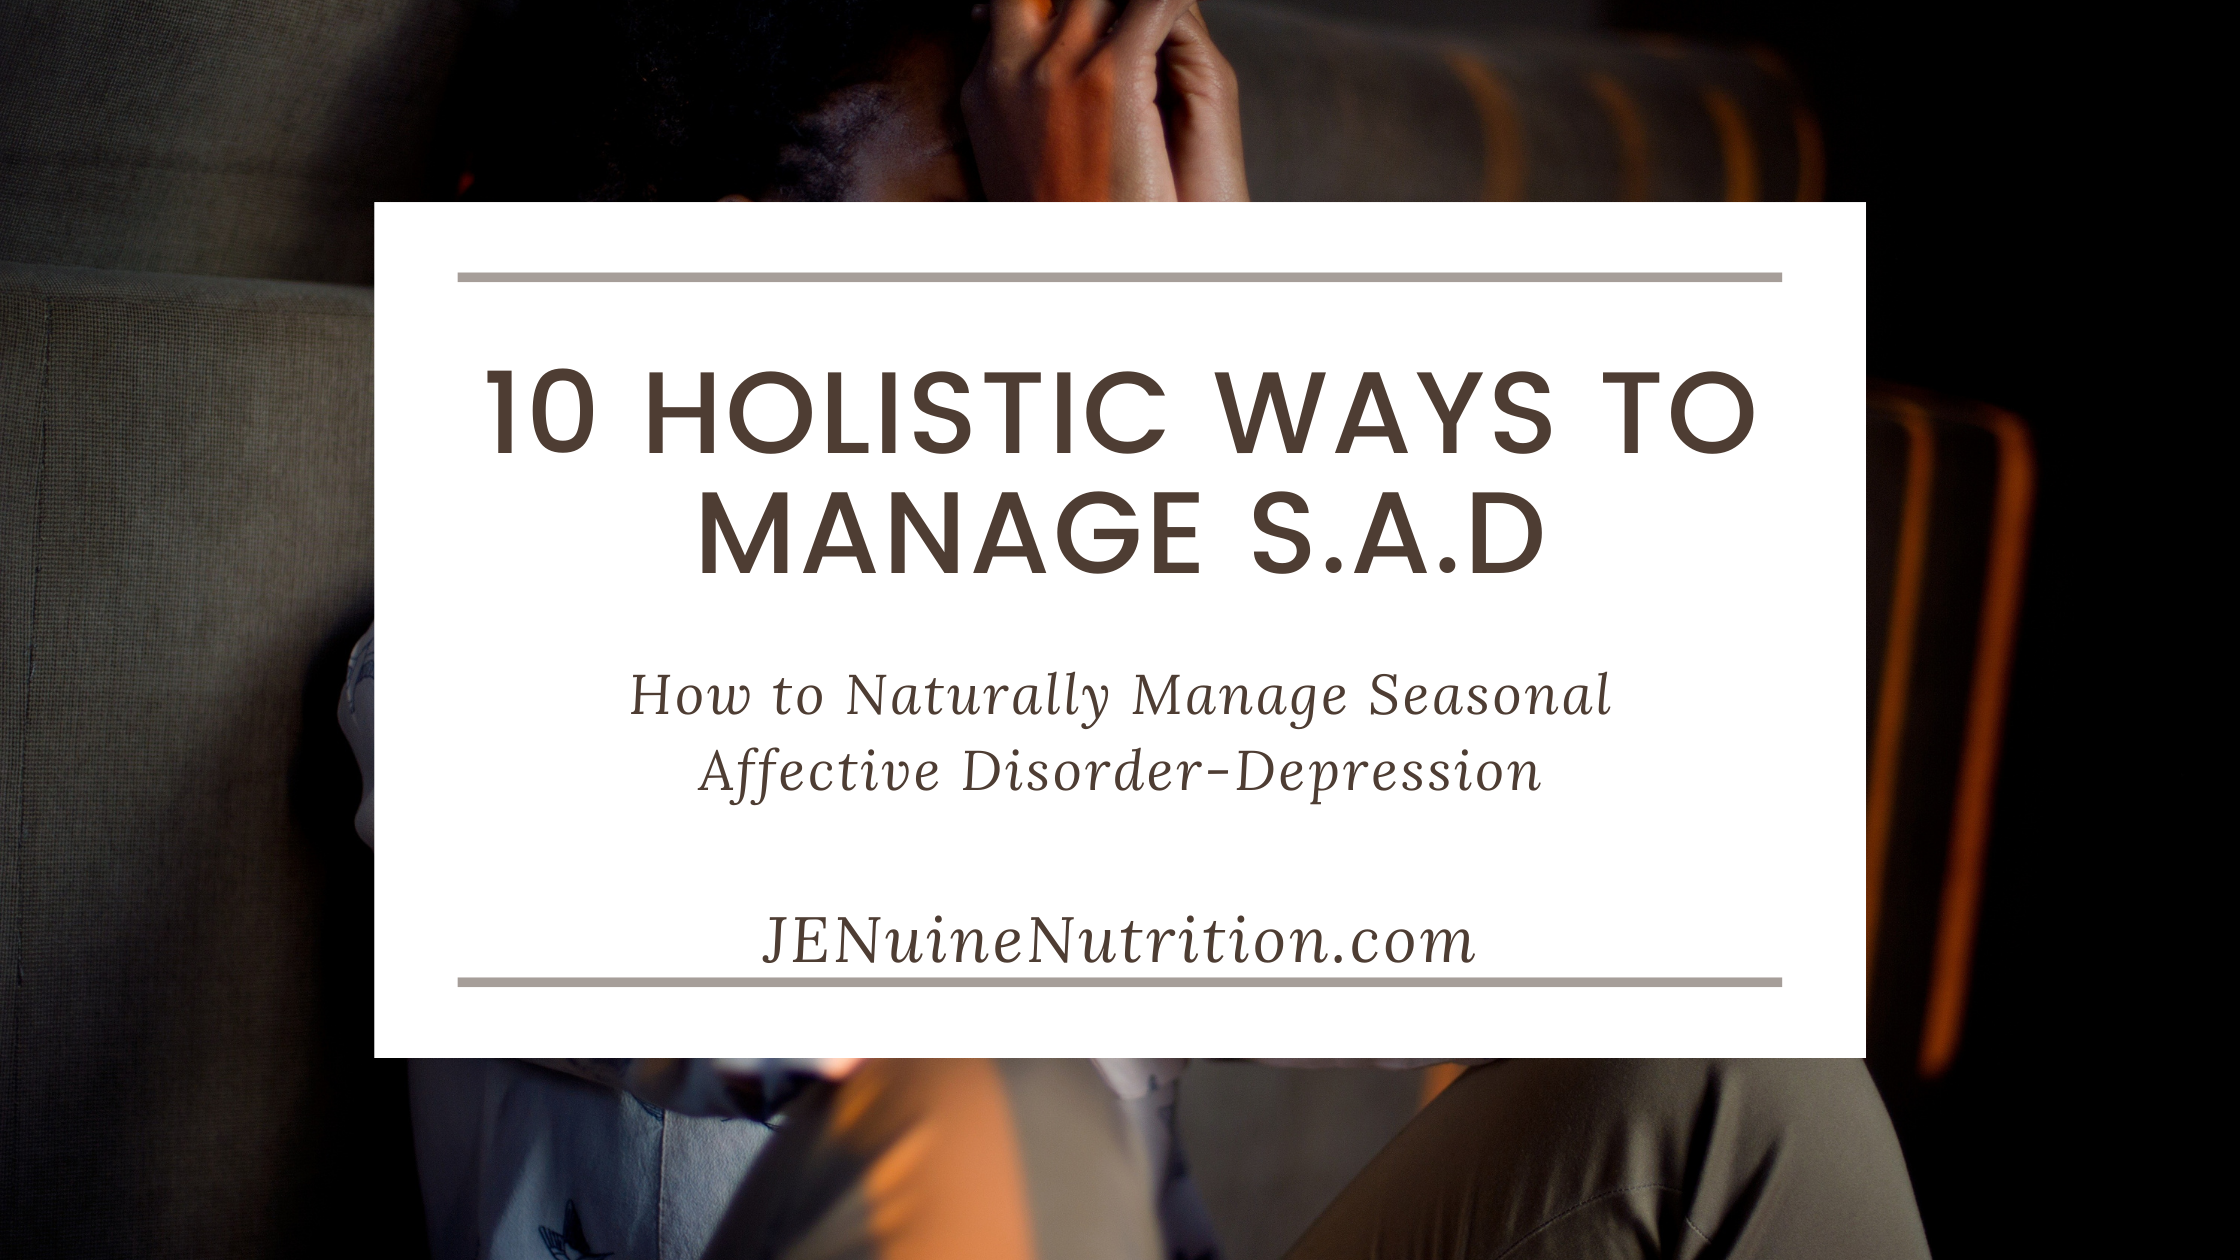 10 Holistic Ways to Manage S.A.D